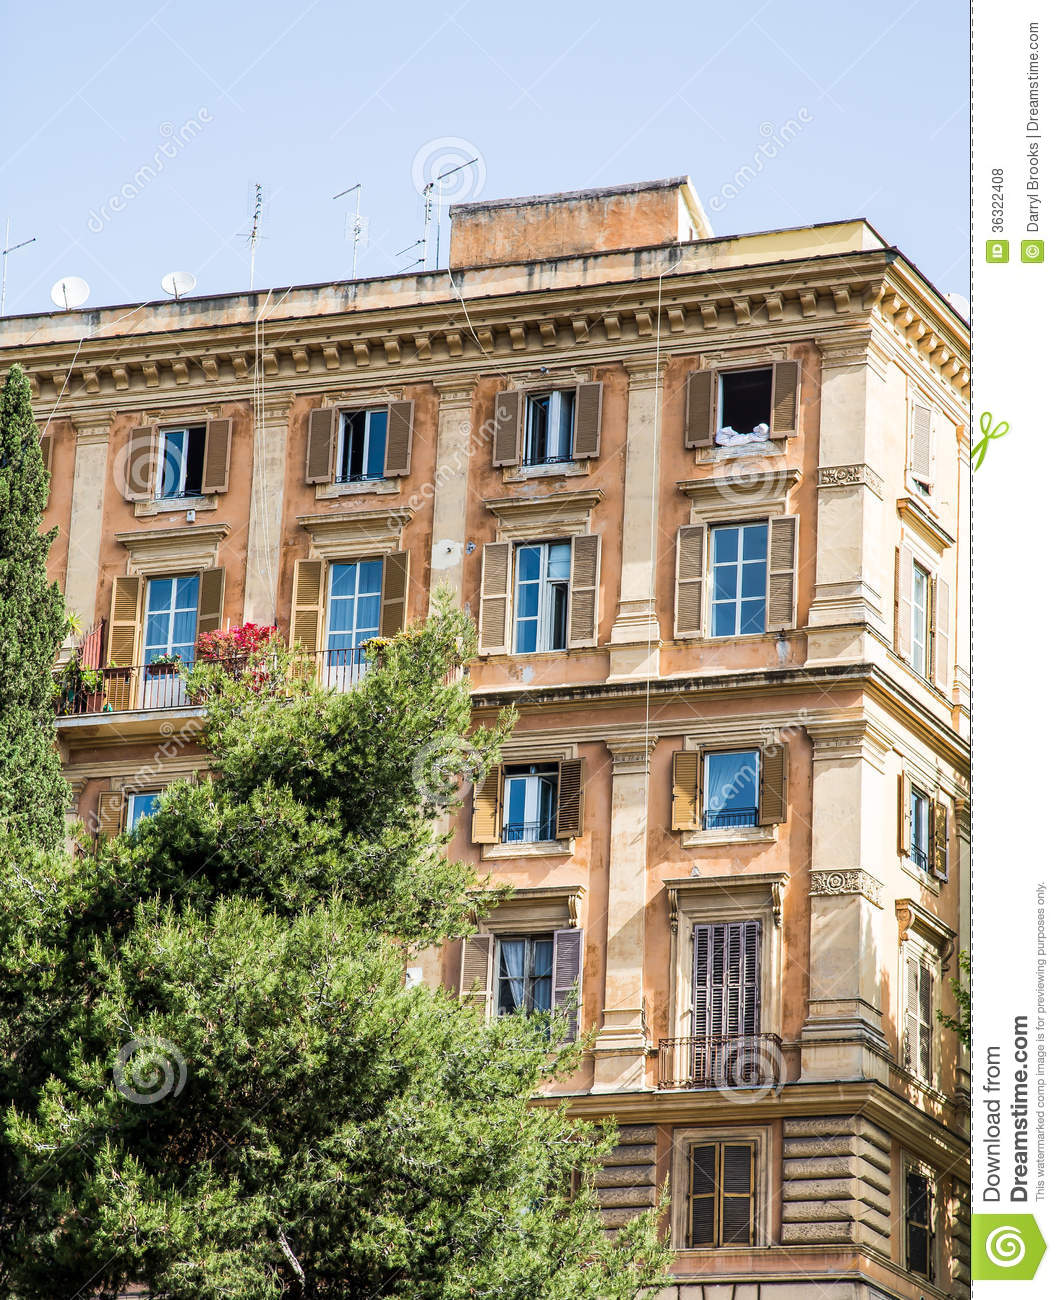 Old Apartment Building: Colorful Old Apartment Building In Rome Stock Photo